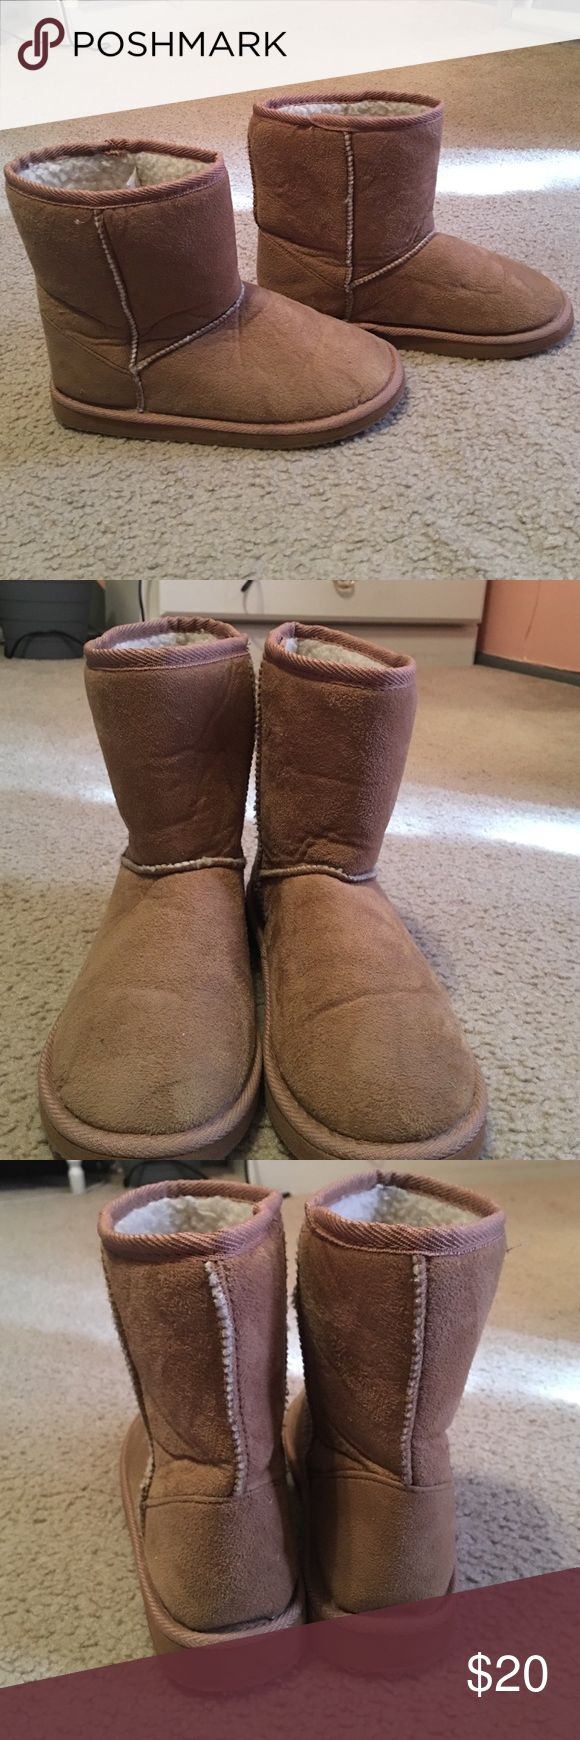 Women's brown boots New condition faux suede brown boots. Only ever worn once and really vote for the winter and fall! Shoes Ankle Boots & Booties